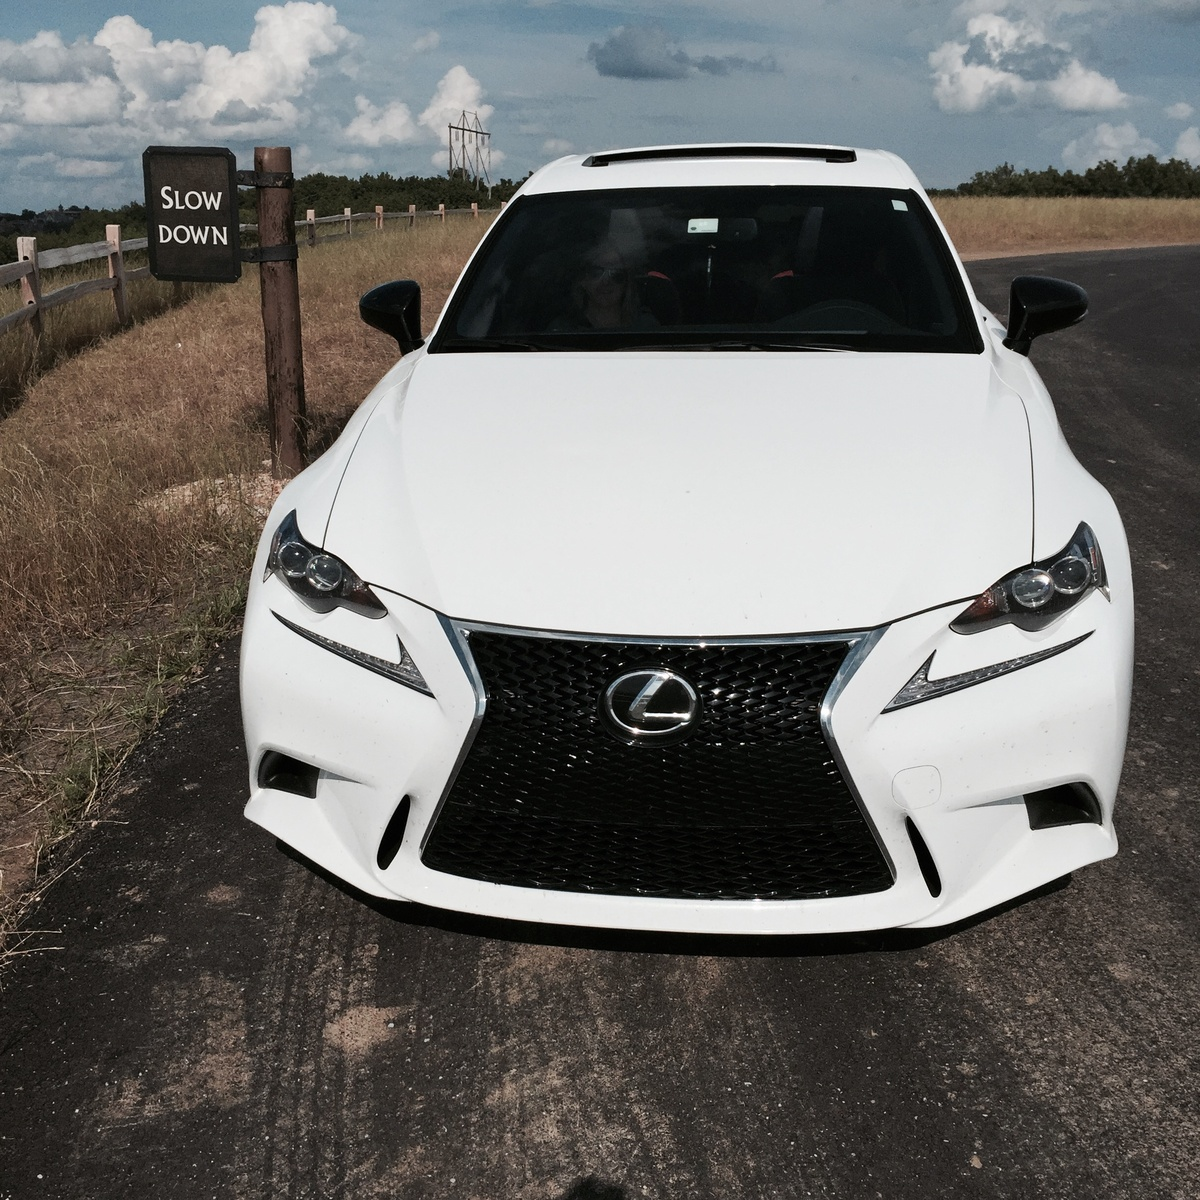 Lexus Is 250: 2015 Lexus IS 250 For Sale In Your Area